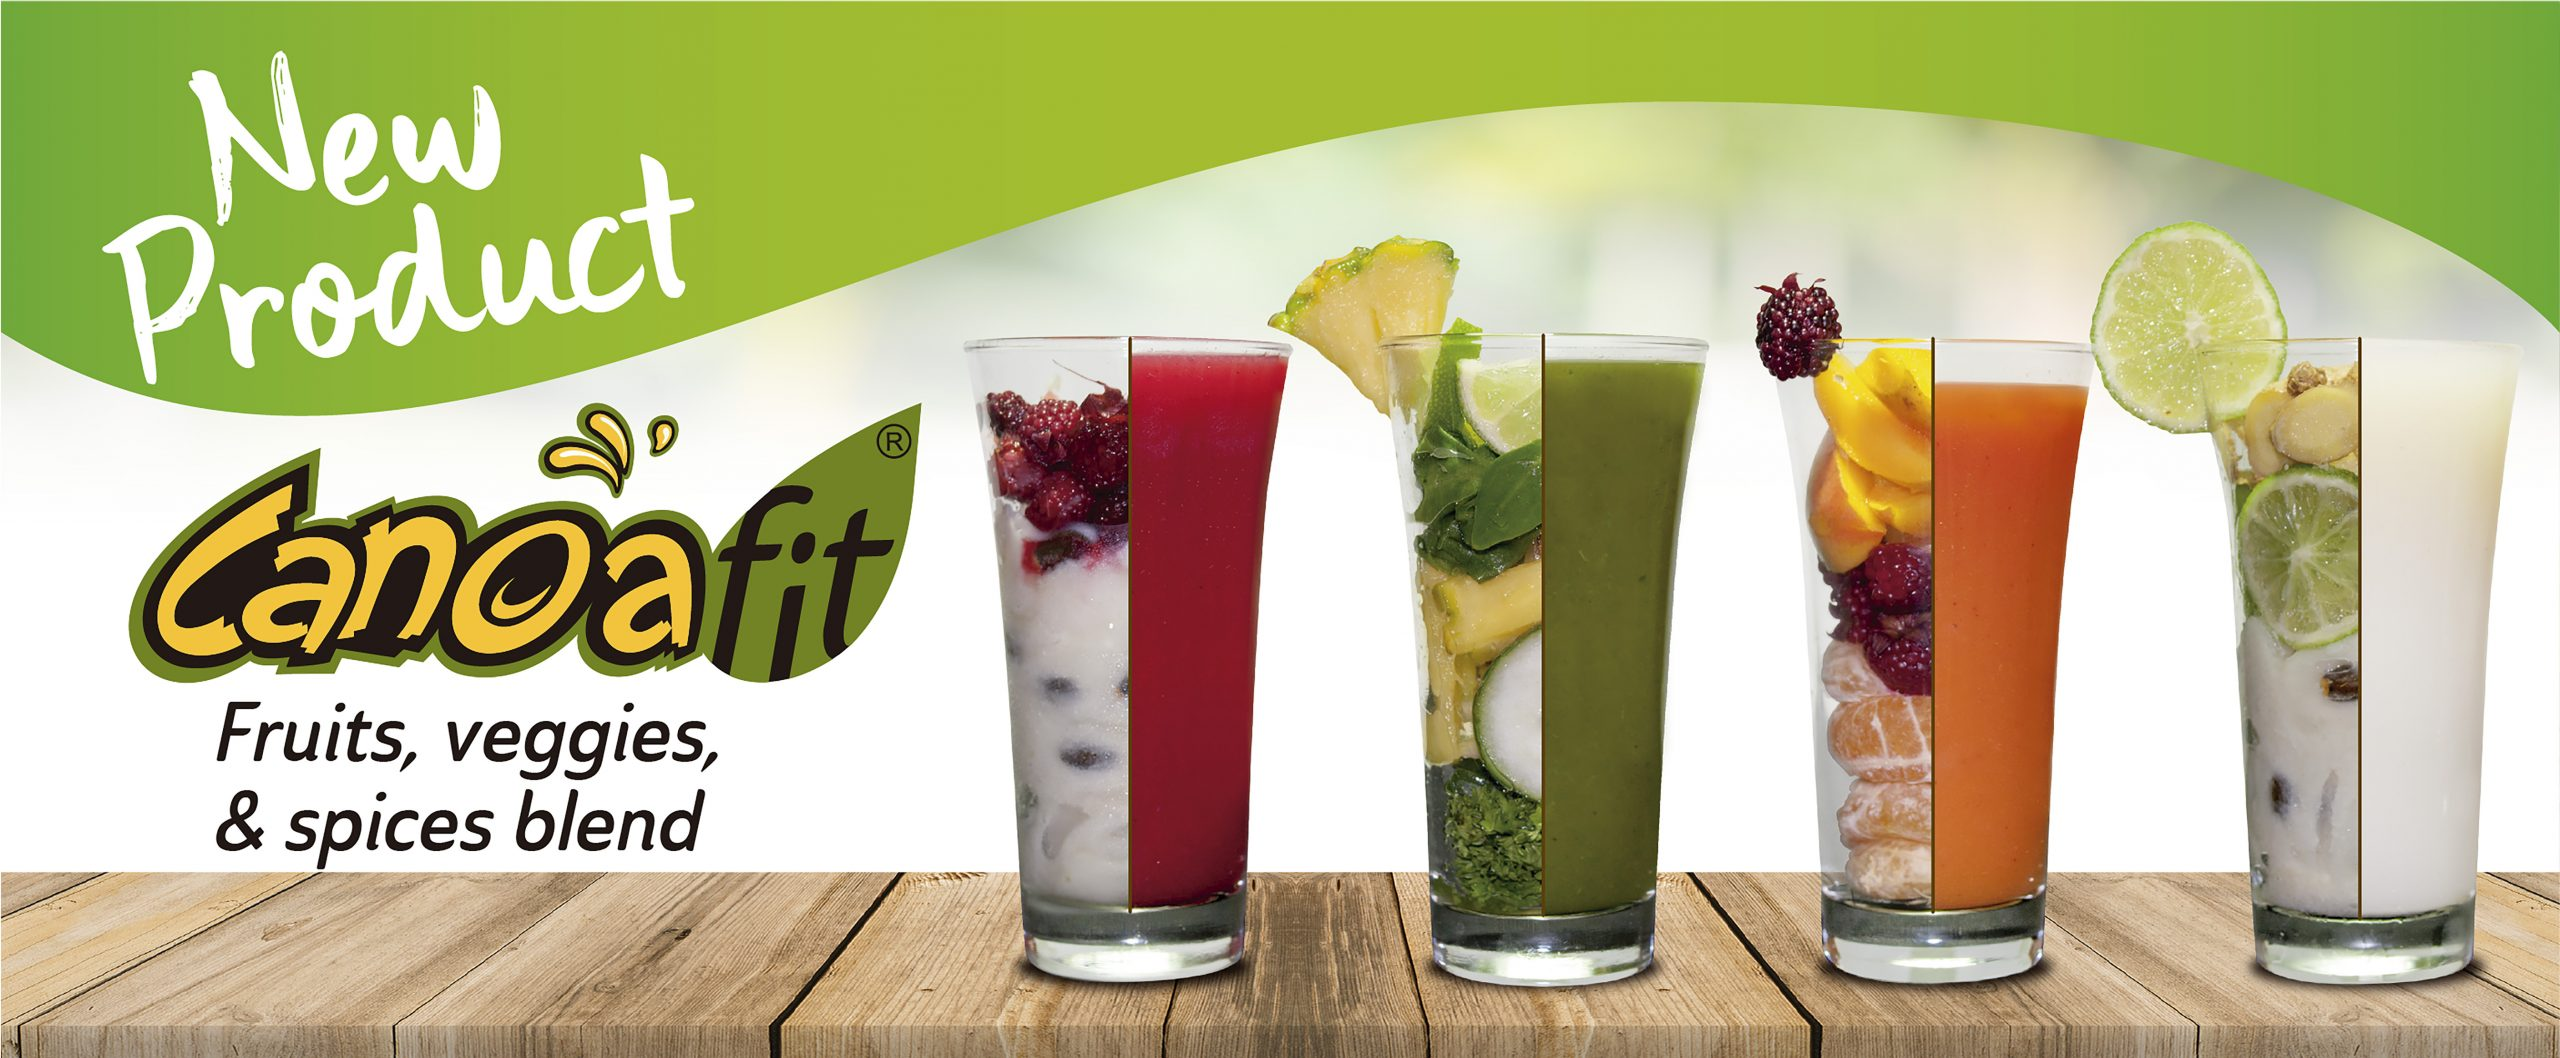 banner canoa fit-01